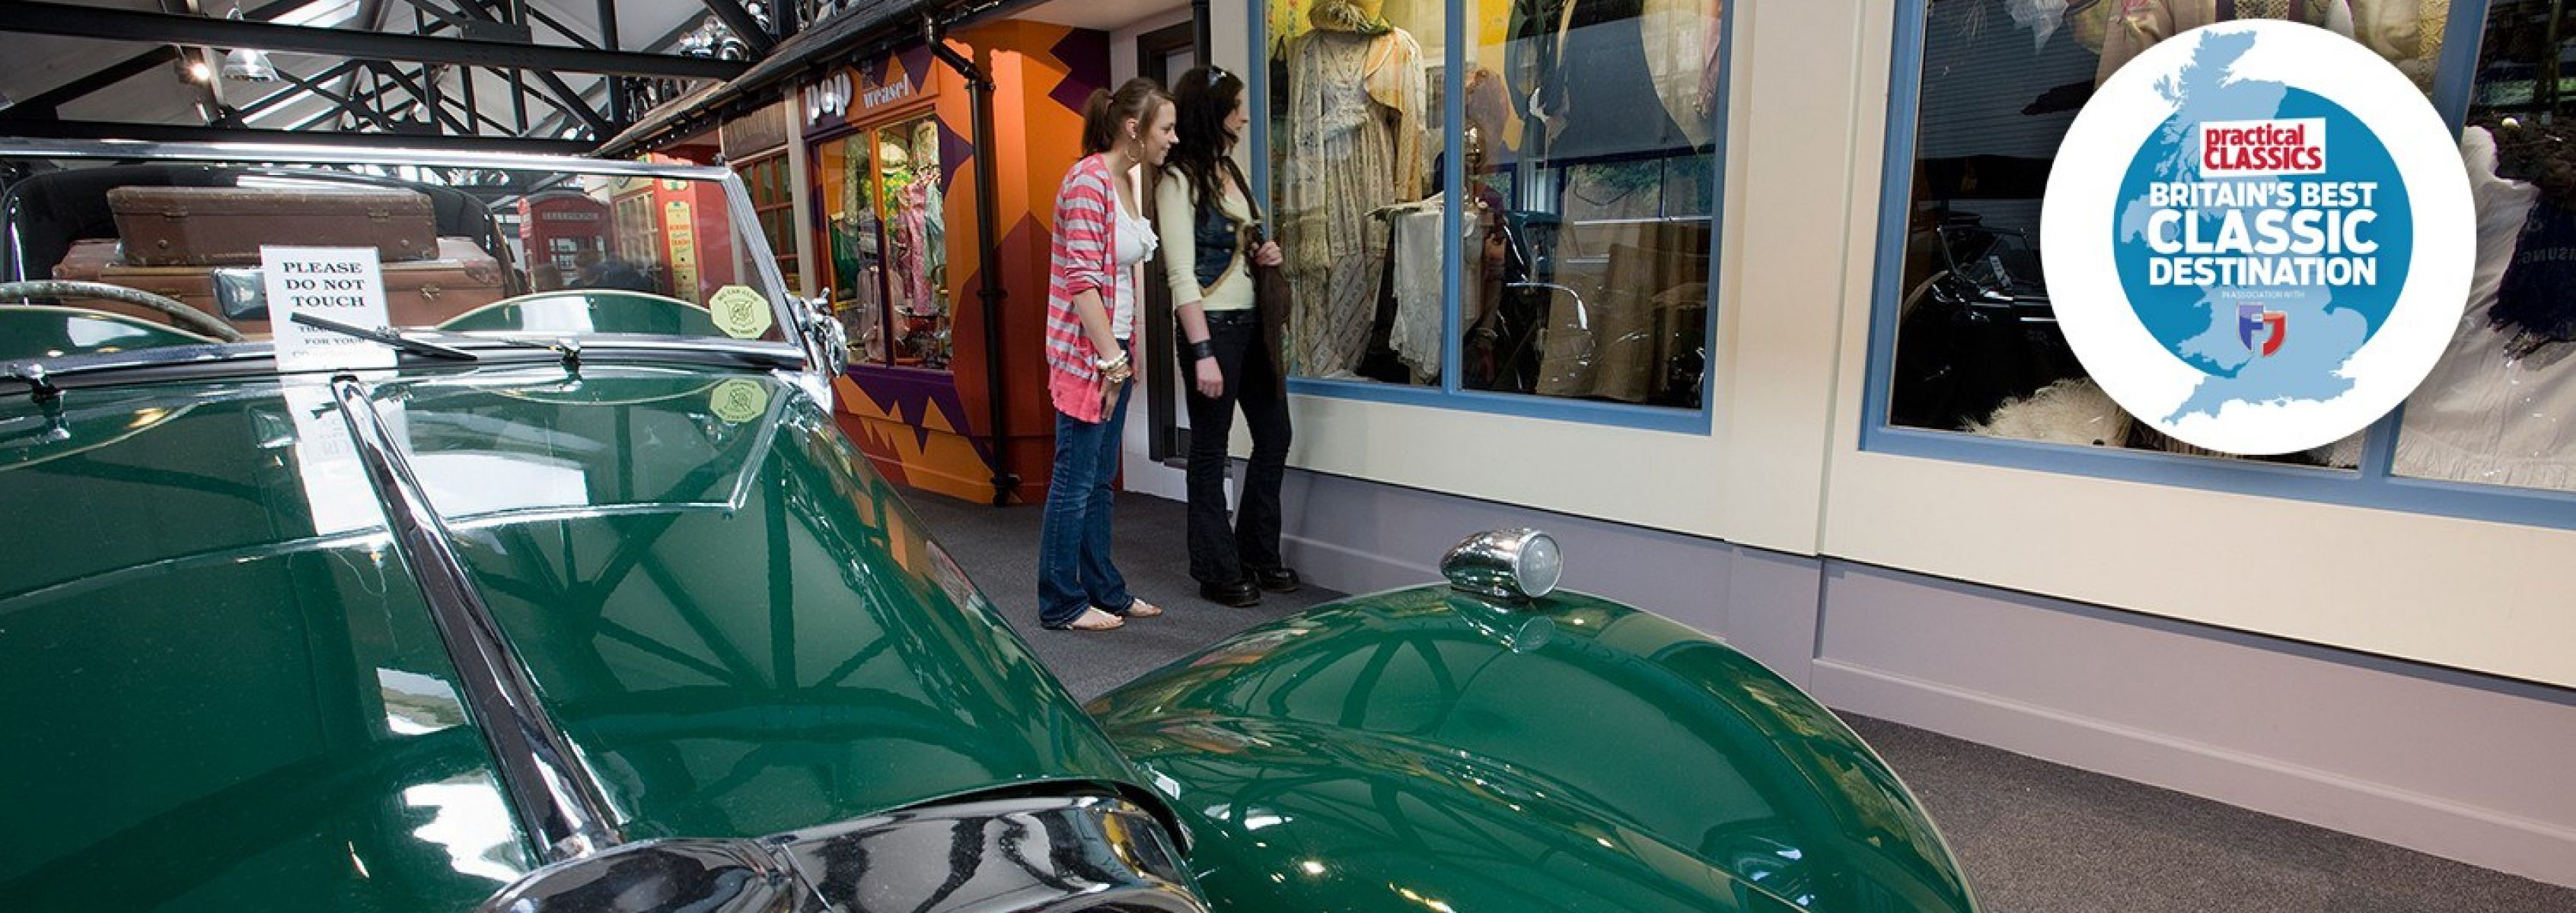 <p>Explore our fantastic recreations of period shops, a 1920s garage and 1950s cafe and find out about local history and motoring in the Lake District.</p>